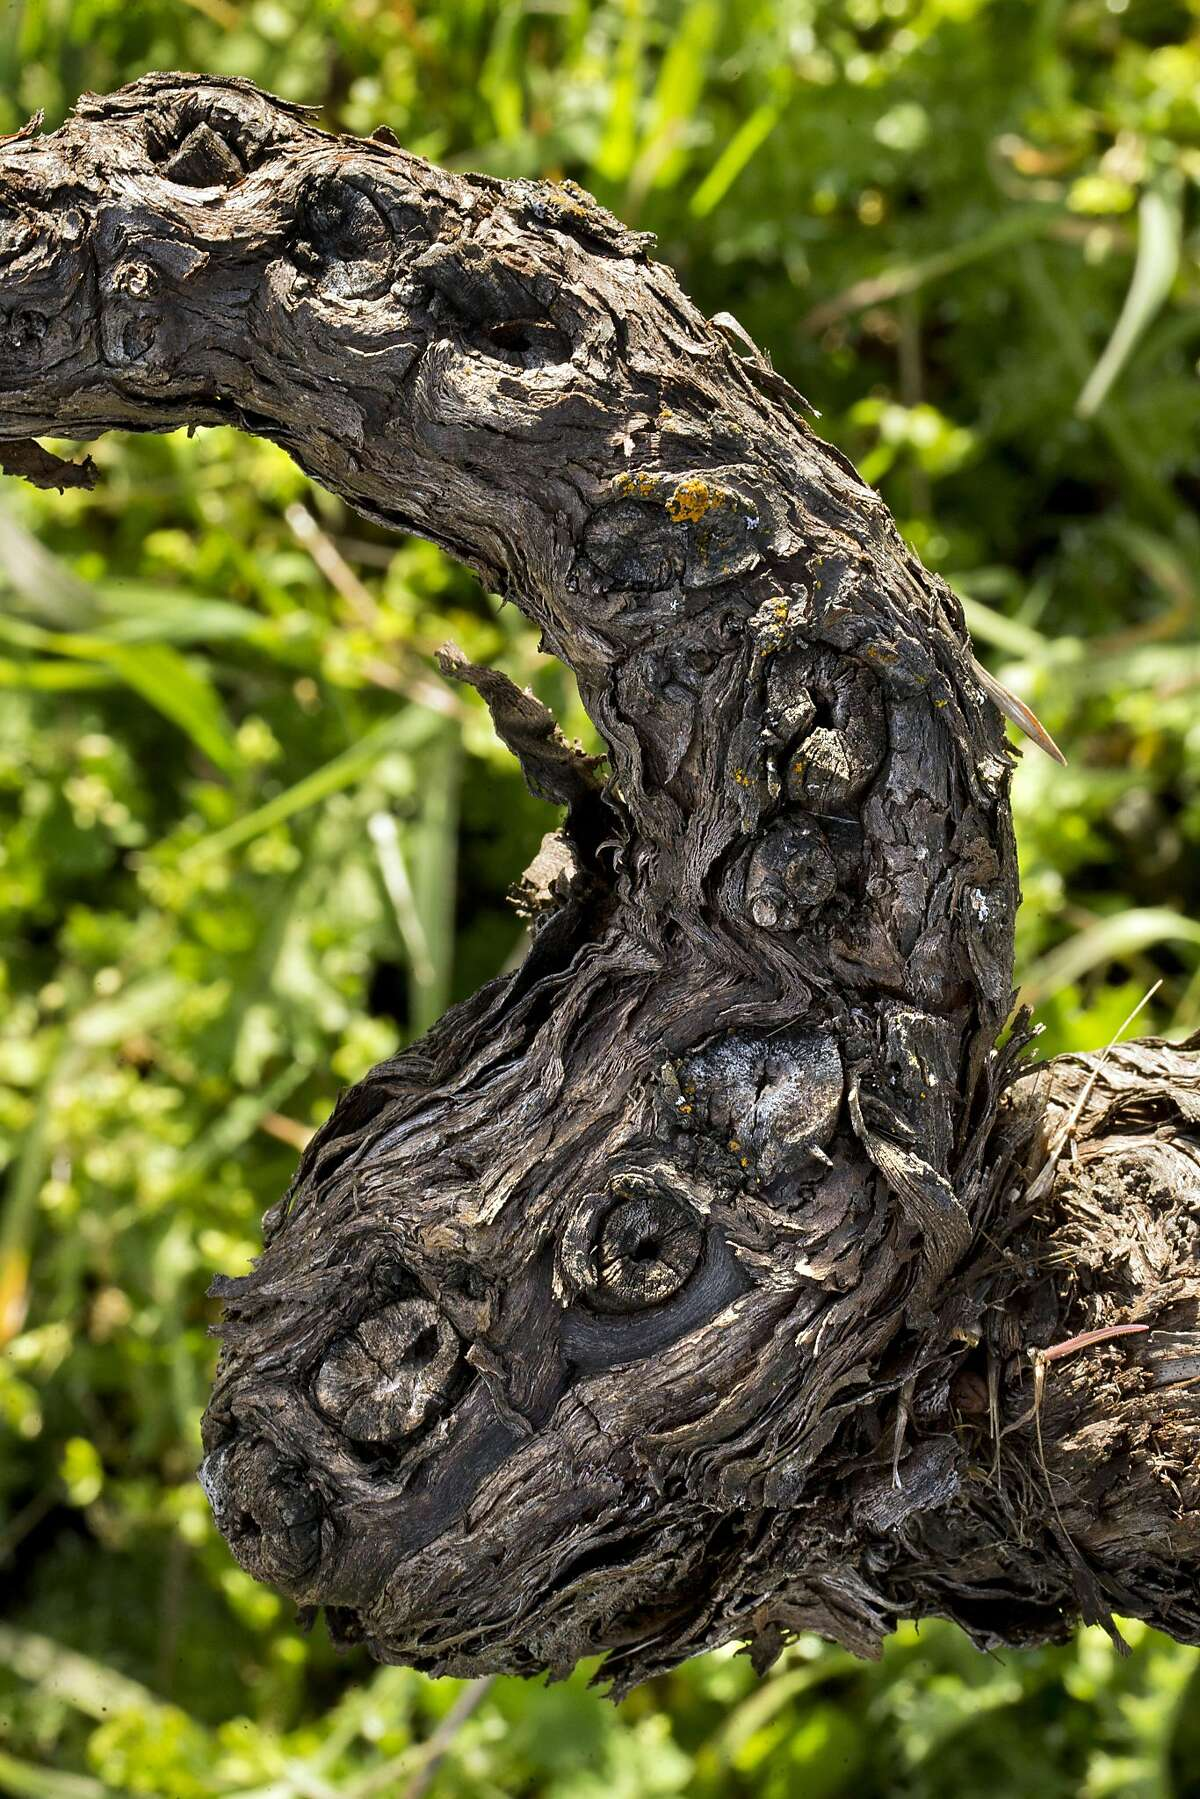 A progressions of pruning scars are visible on a Mission Grape vine at Story Winery in Plymouth, Calif., on Monday, March 6, 2017. The winery still harvests the Mission grape, which was the first type of grapevine to be planted in California. Few Mission vines remain, but Story Winery has about an acre remaining of vines planted in 1894.